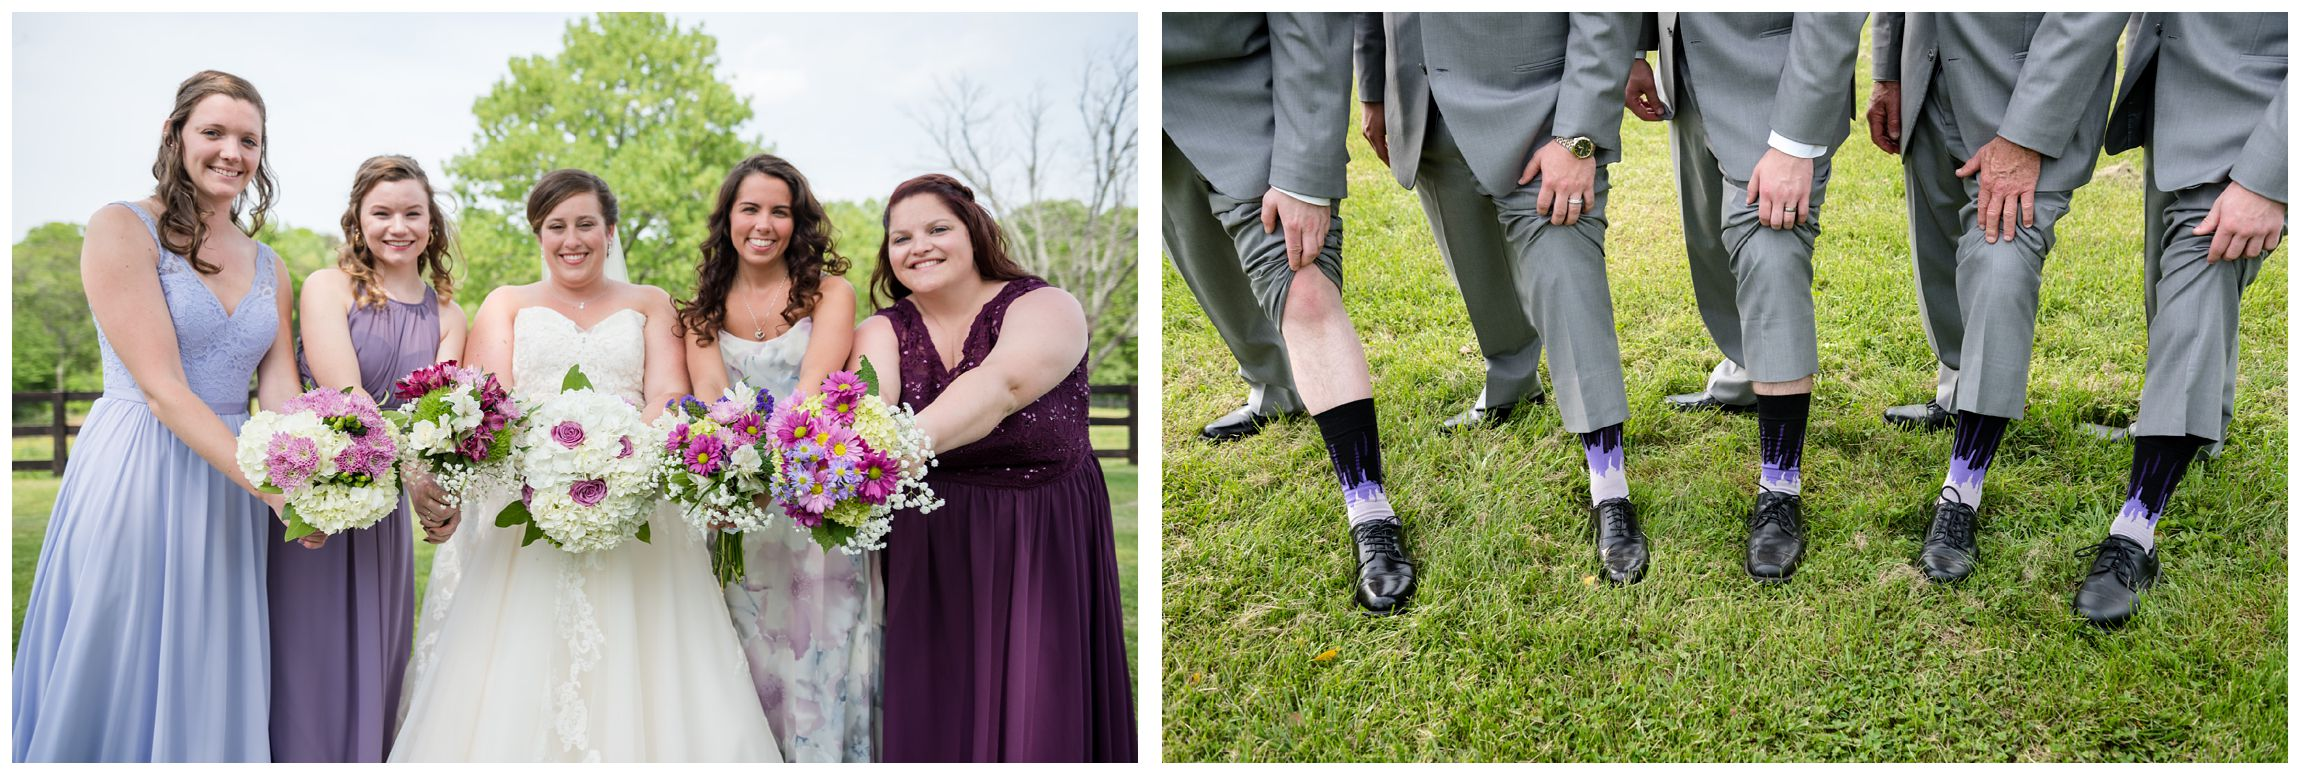 bouquets and socks of bridal party